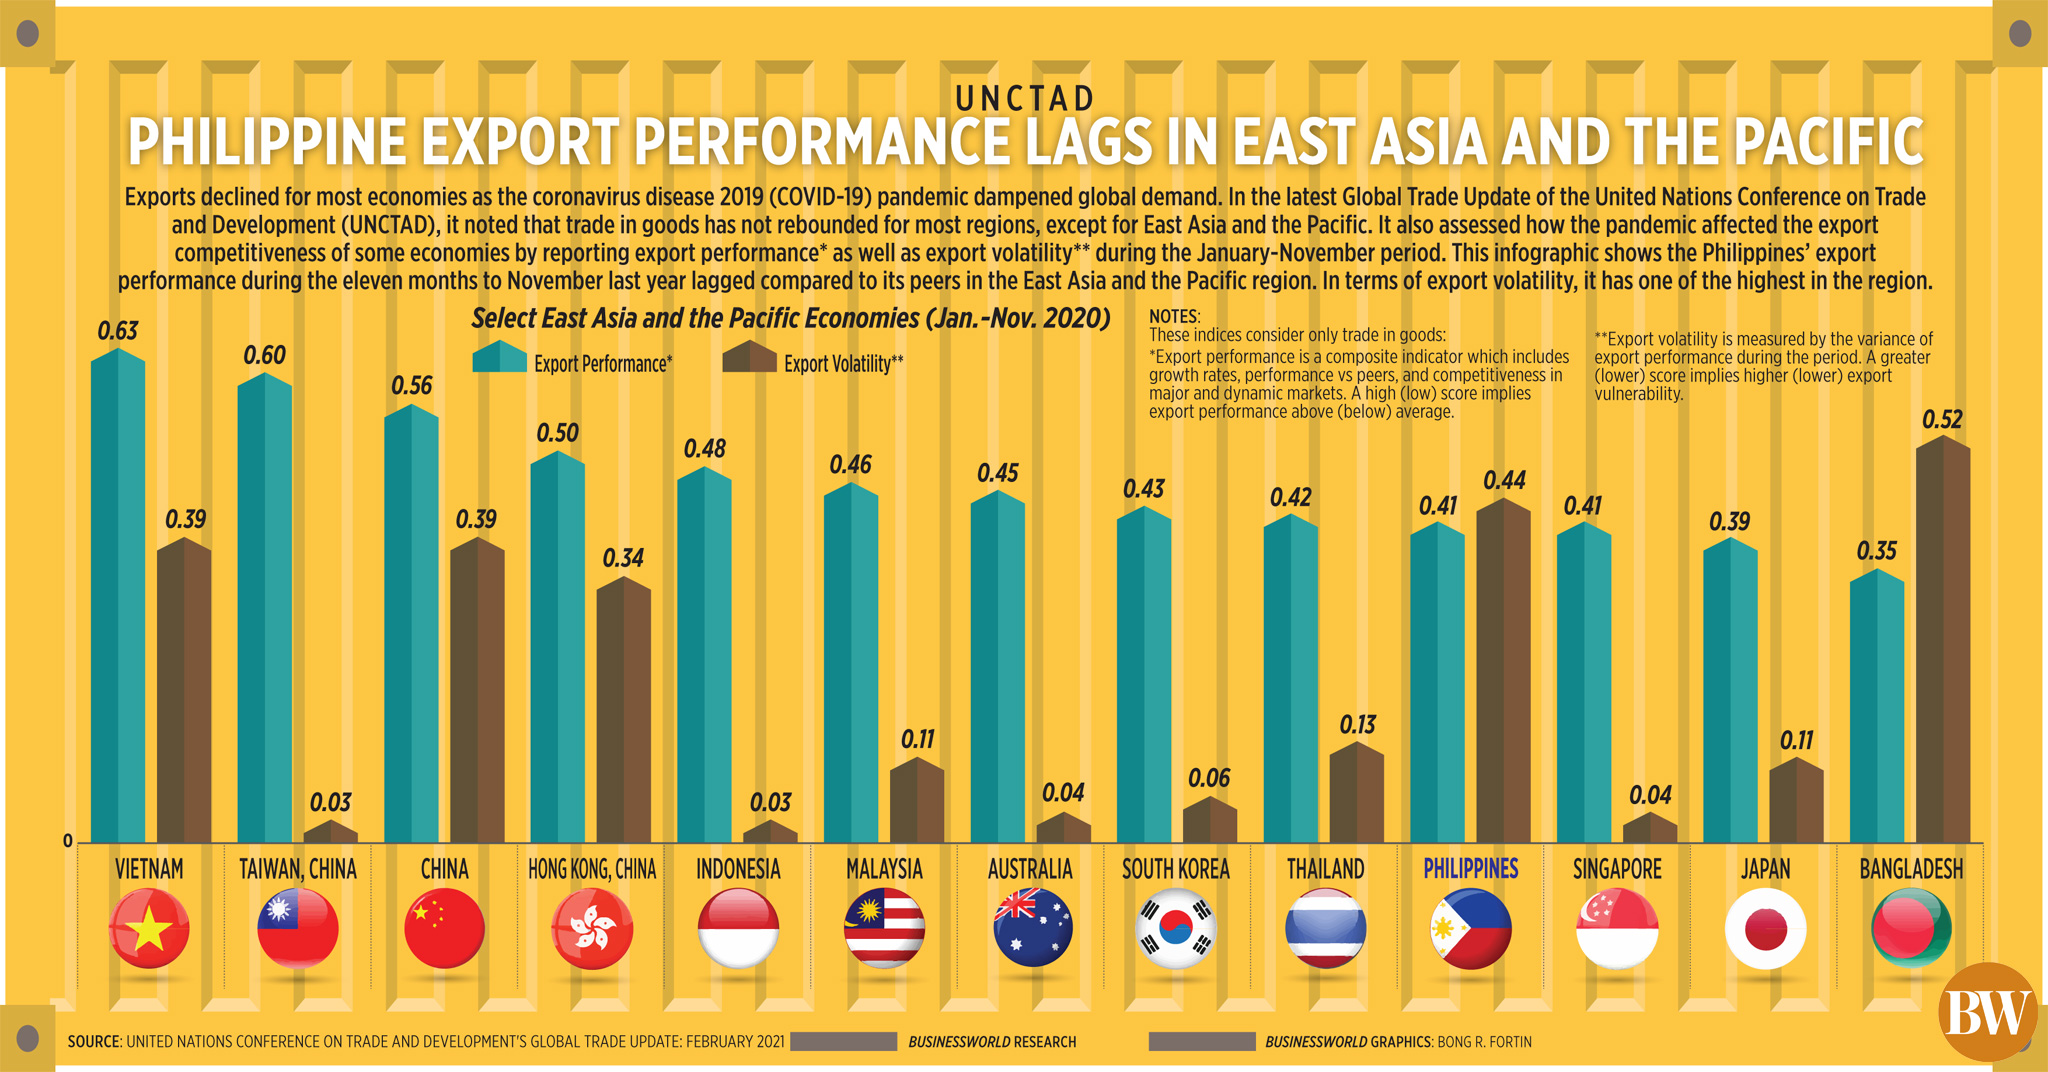 Philippine export performance lags in East Asia and the Pacific